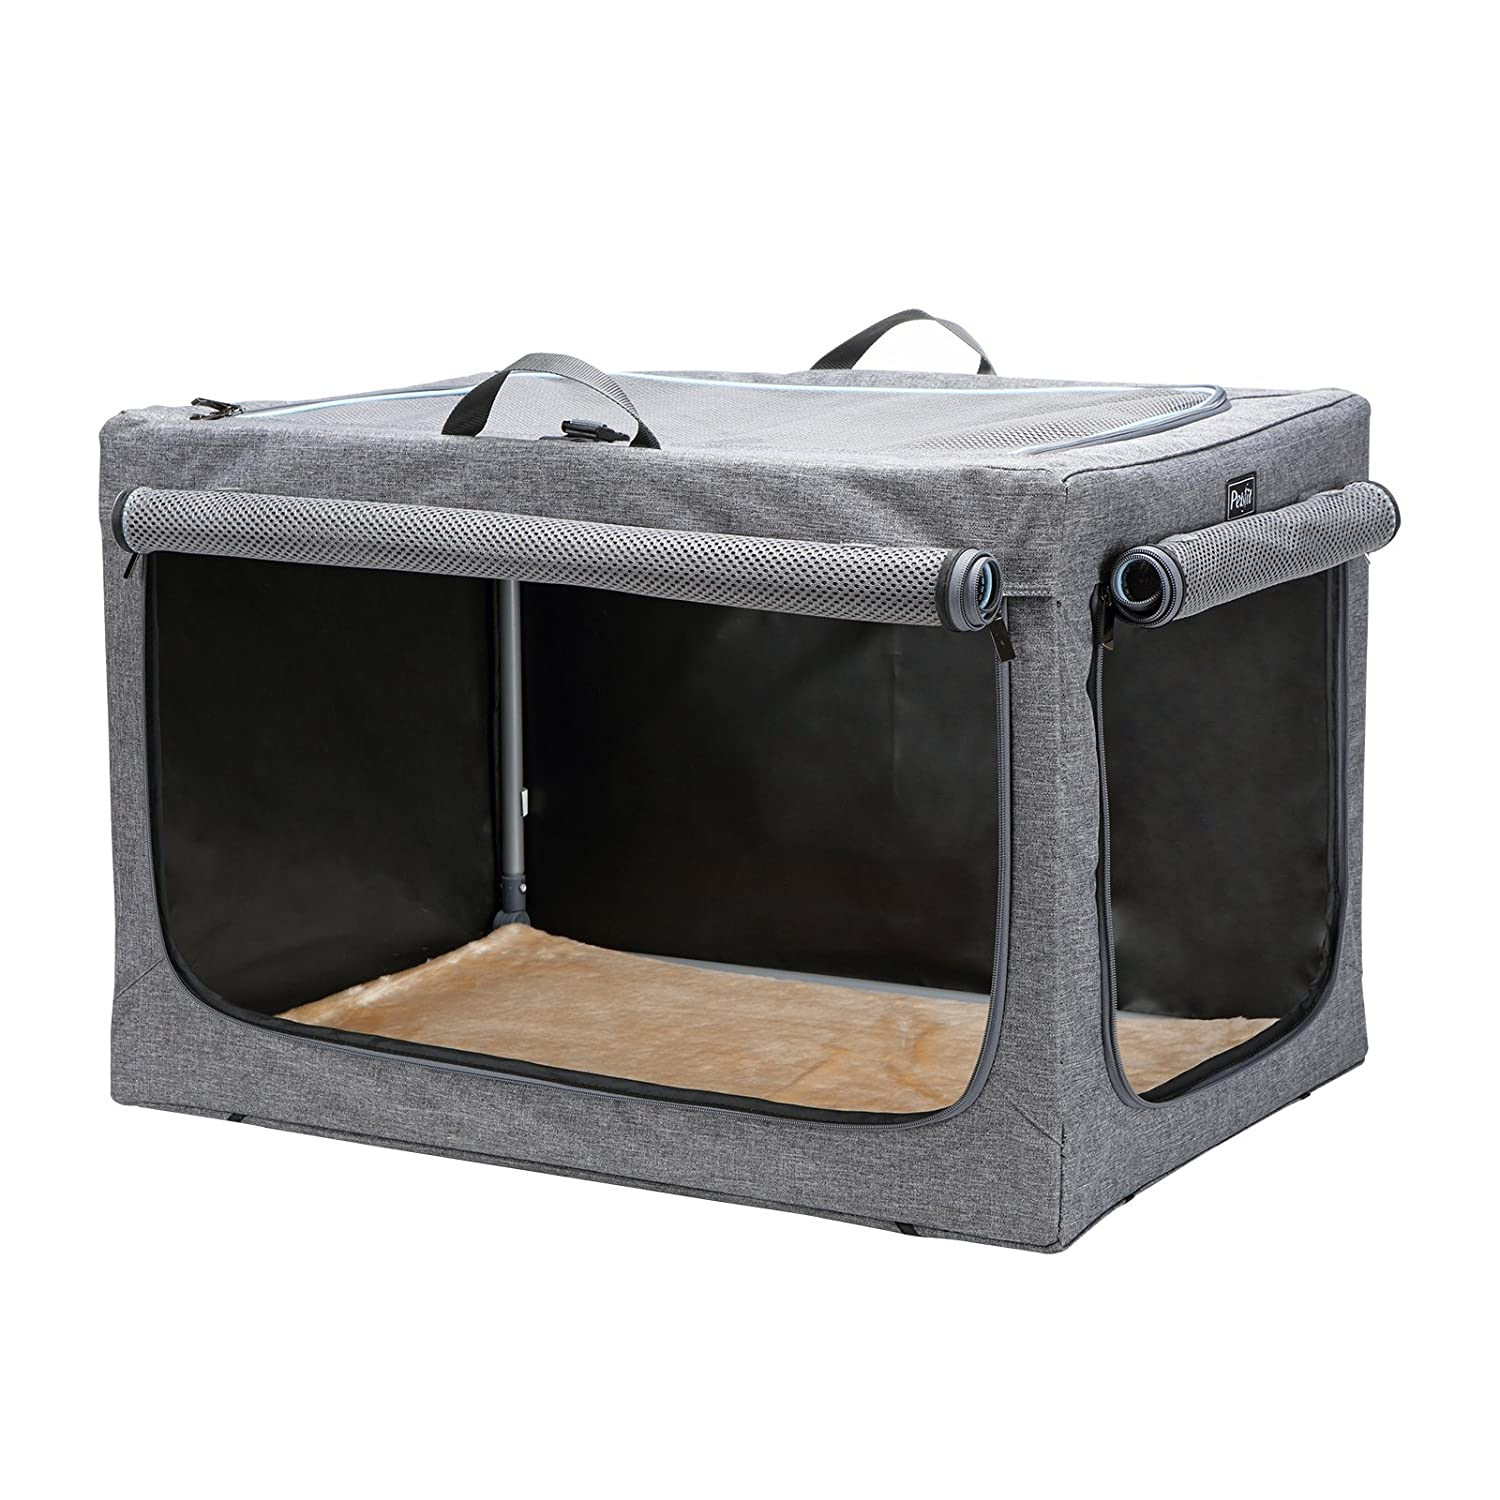 Petsfit Indoor/Outdoor Soft Portable Foldable Travel Pet/Dog Home/Crate/Cage …